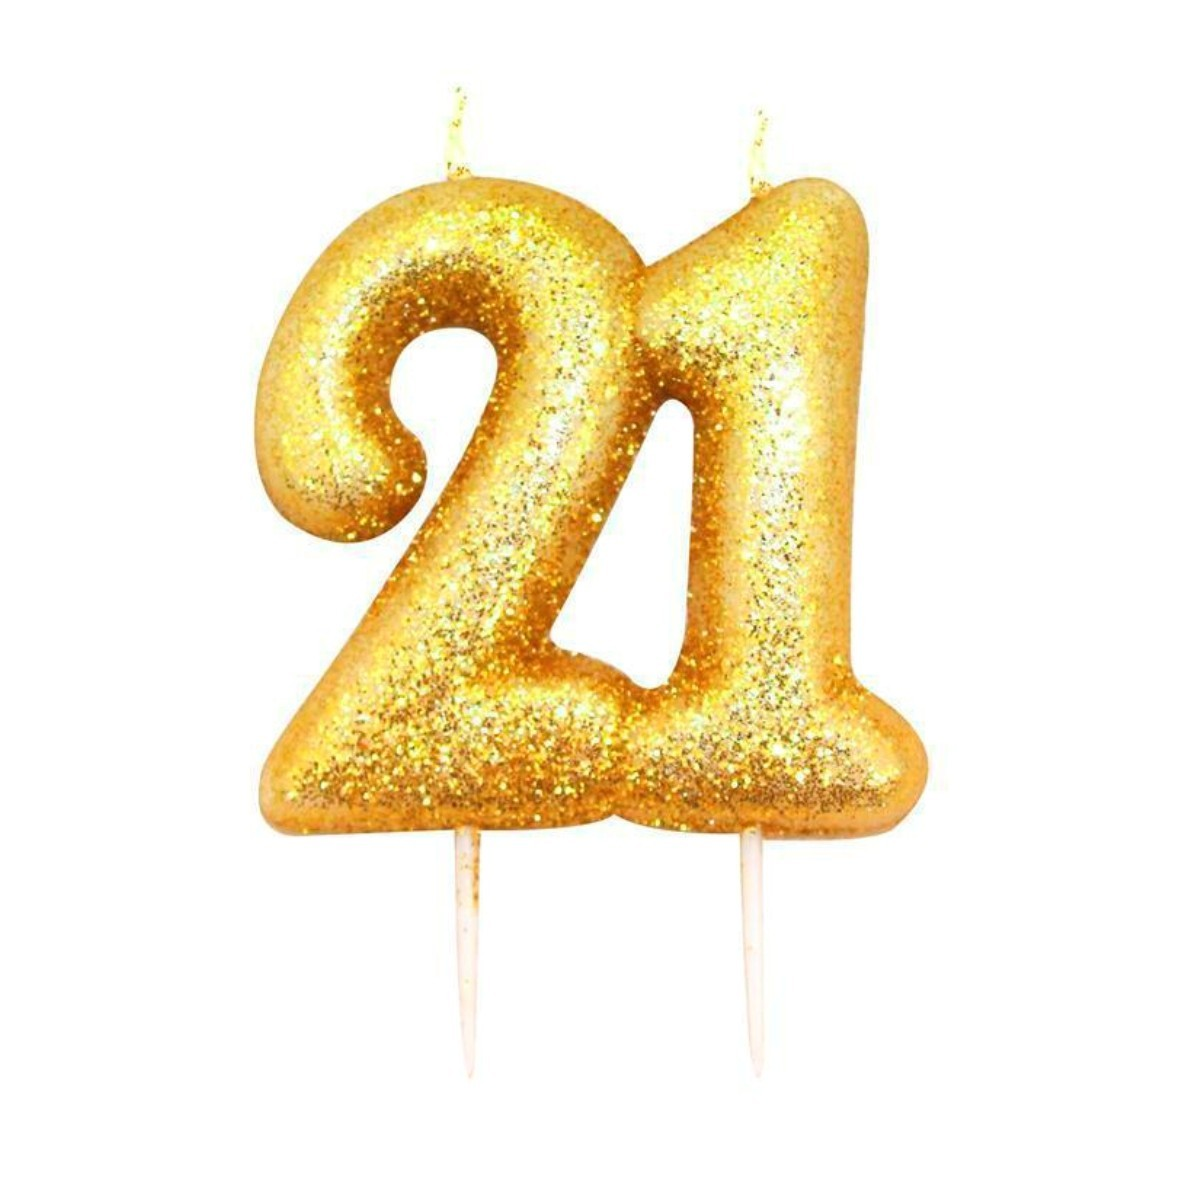 Buy 21 Gold Glitter Number Candle Online